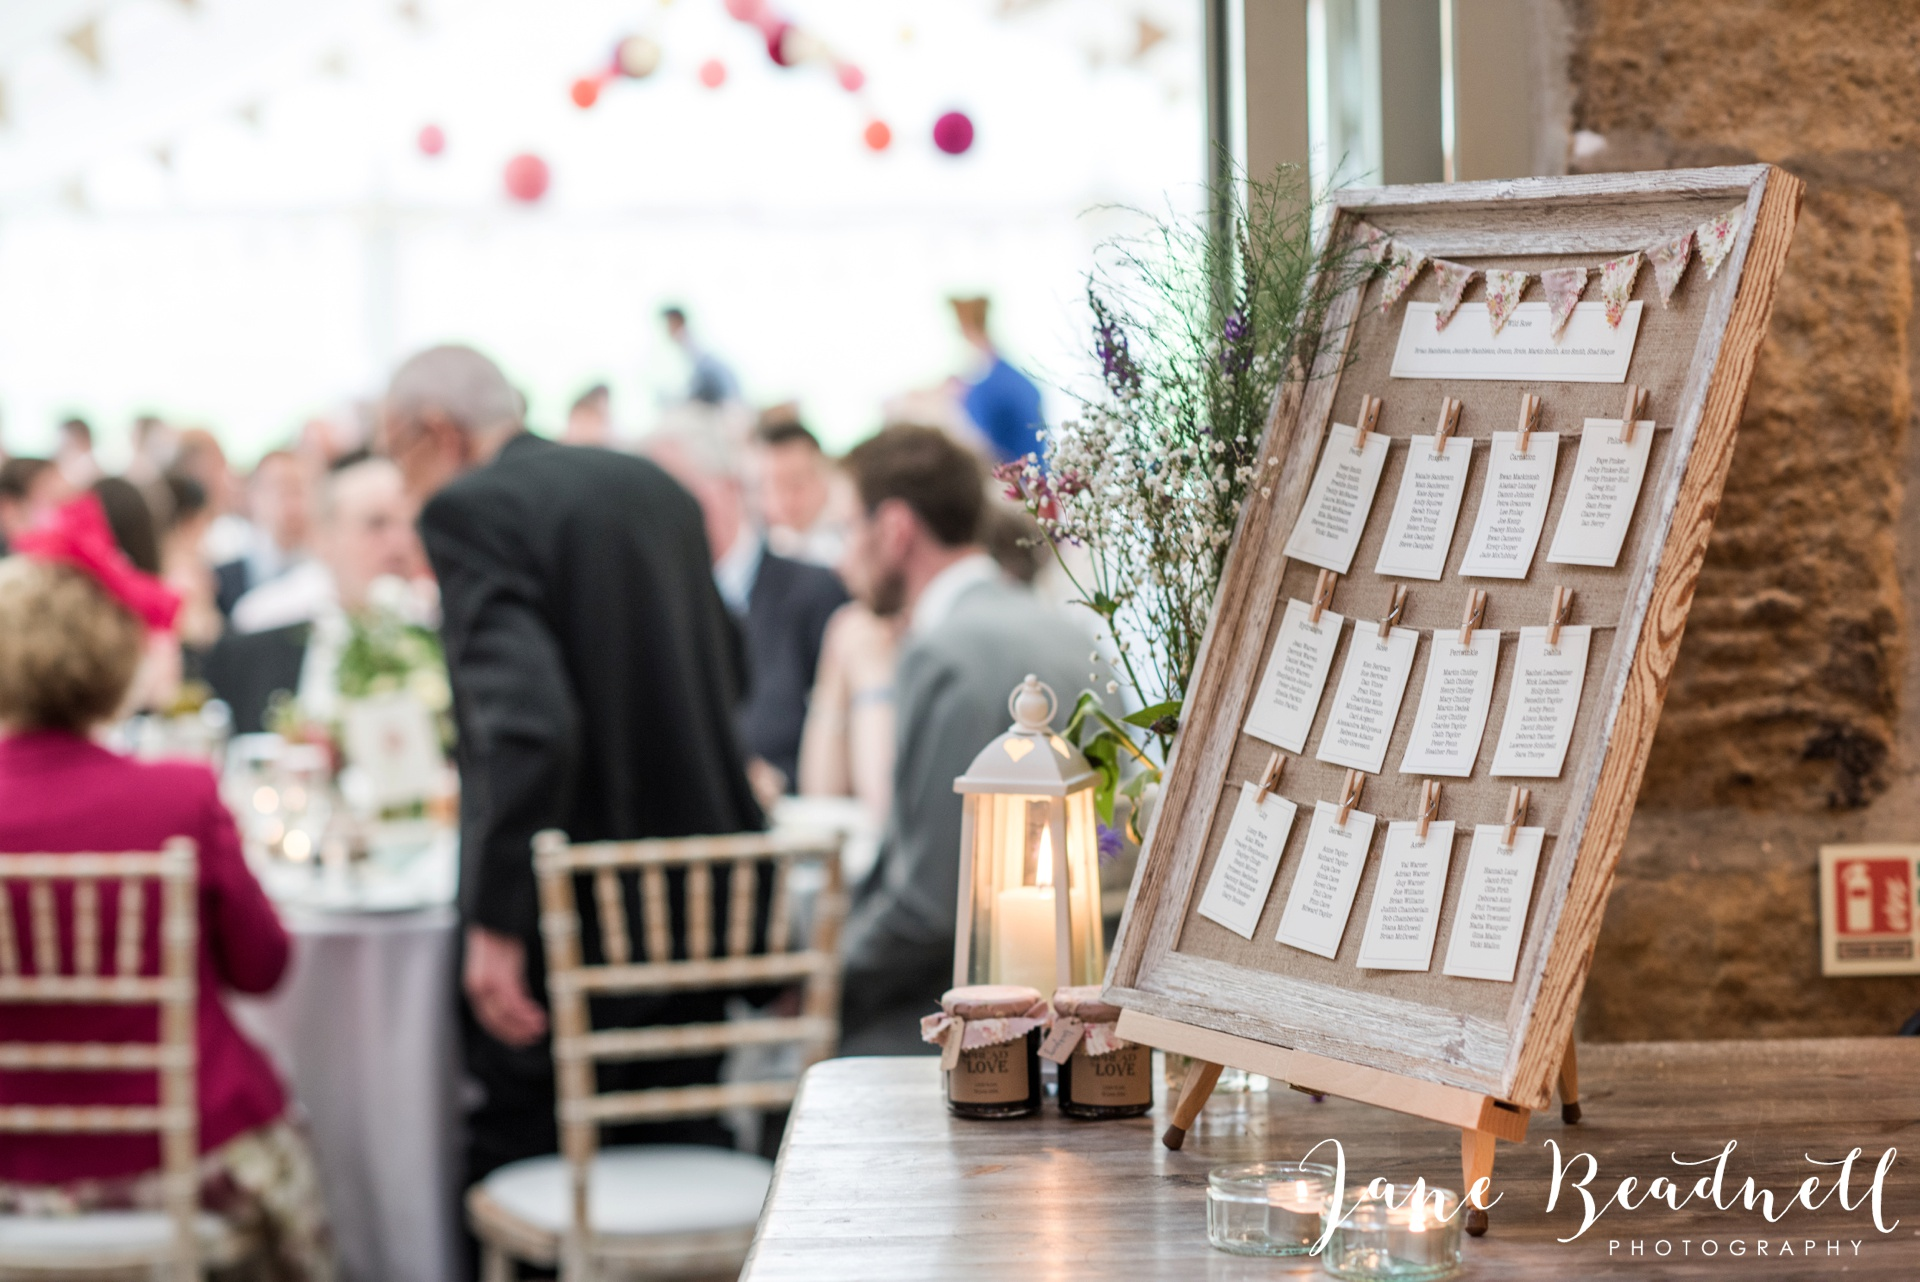 Yorkshire Wedding Photography the cheerful Chilli Barn Wedding by Jane Beadnell Photography_0184